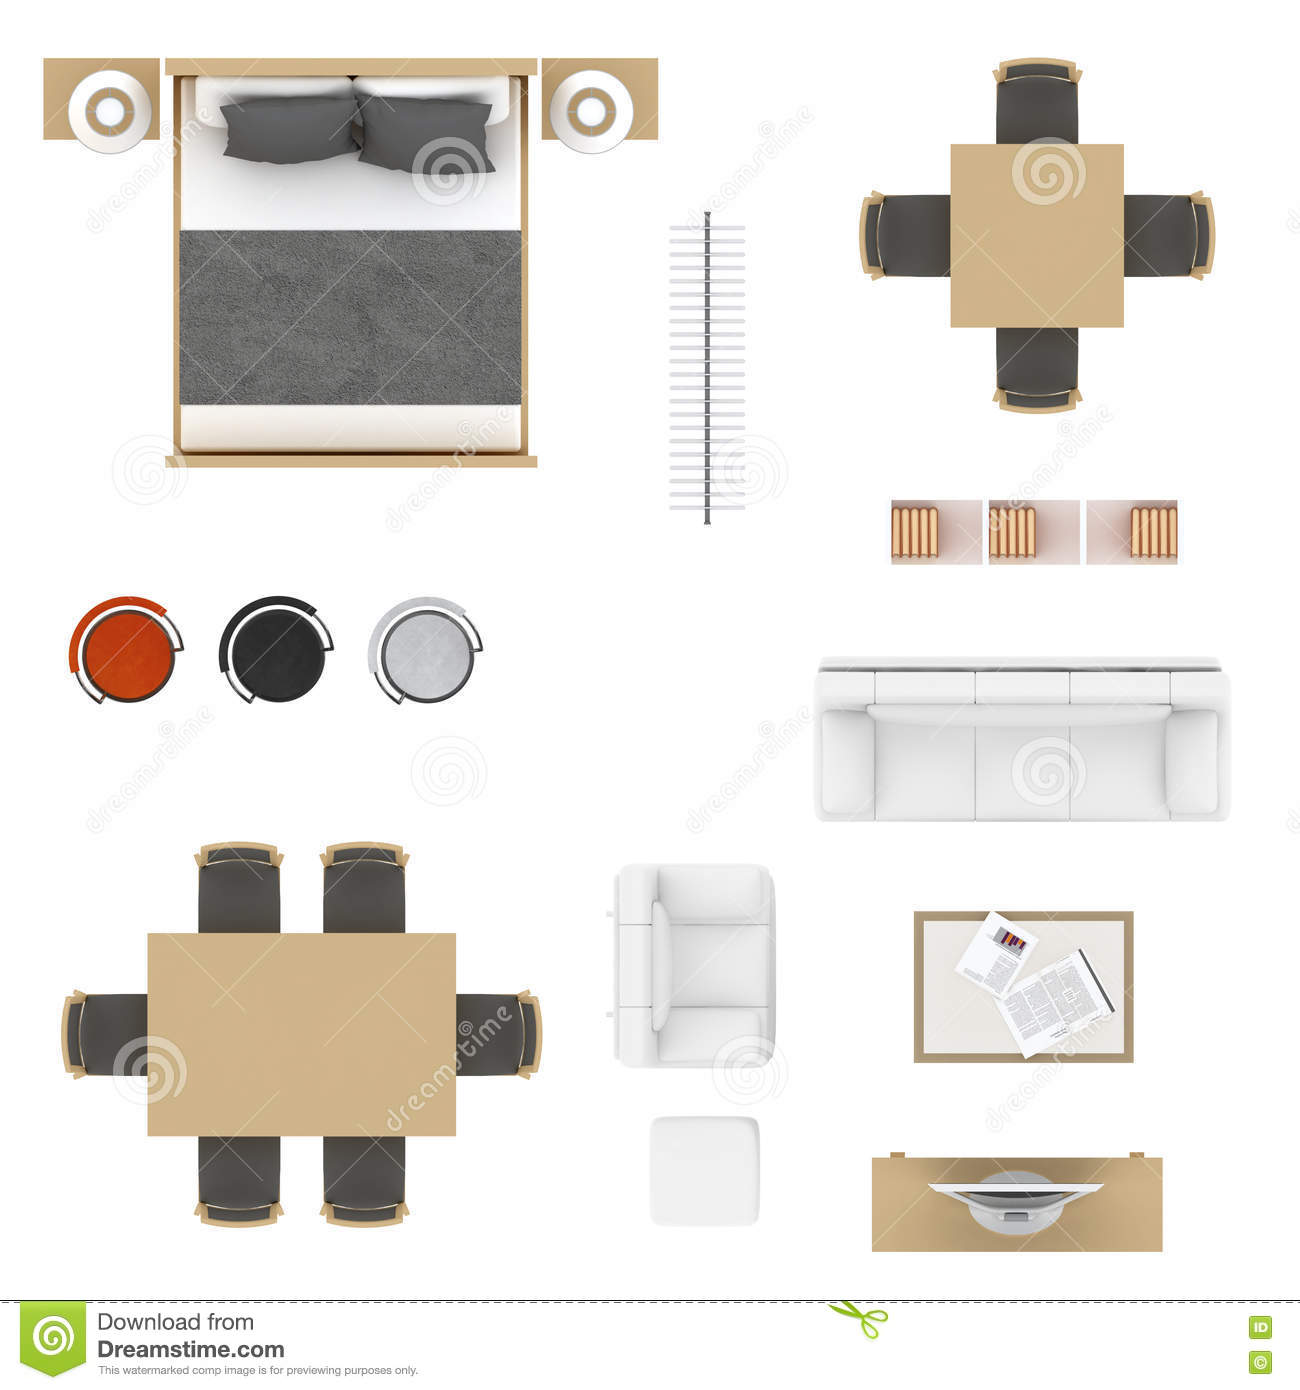 Sofa Set Top View Psd Furniture Elements In Top View Vector Illustration